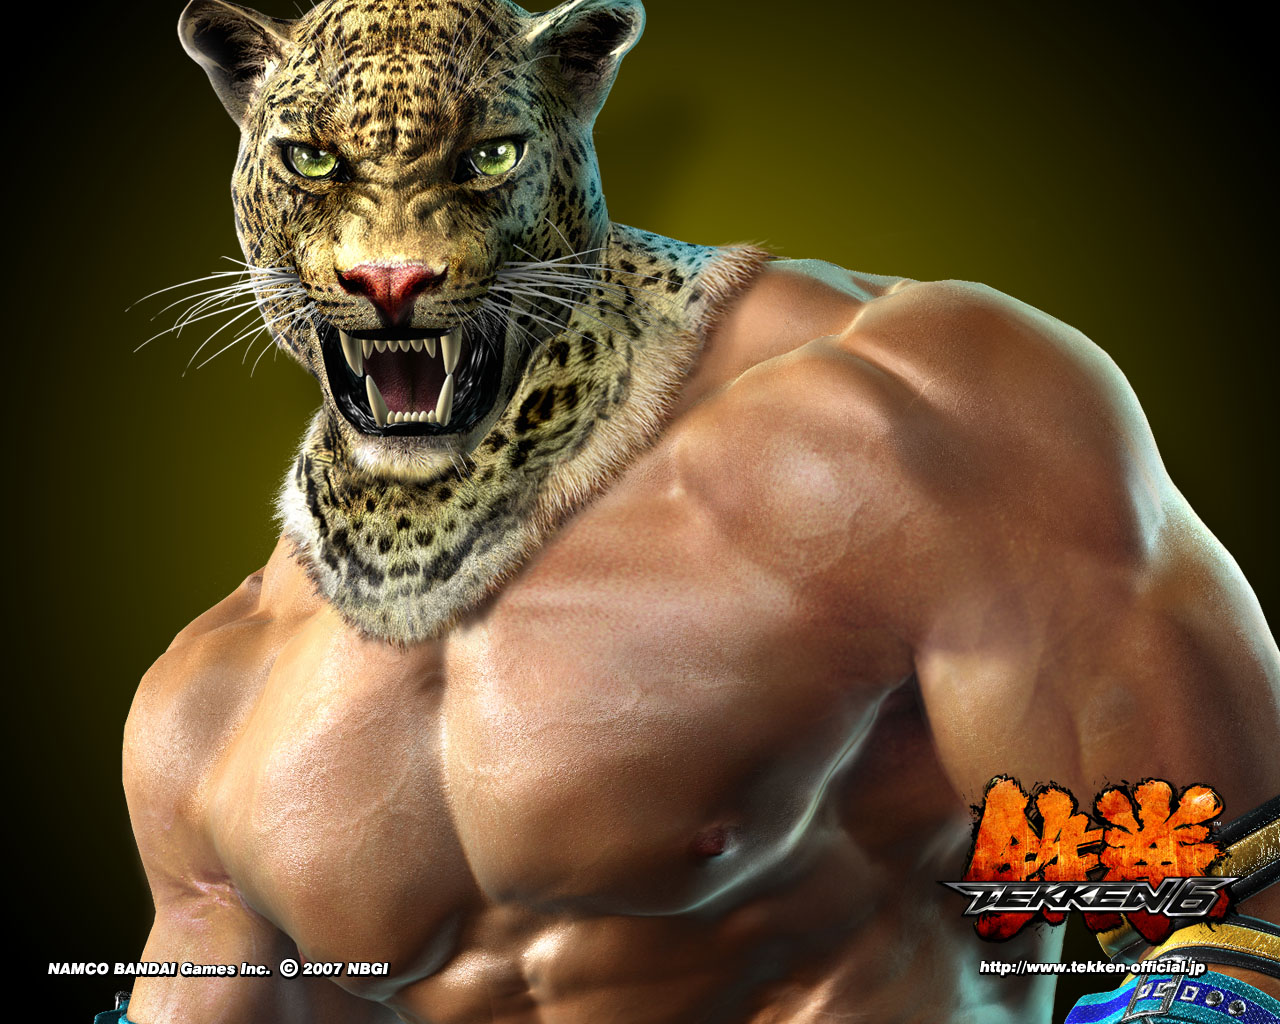 King Tekken 6 461.33 Kb